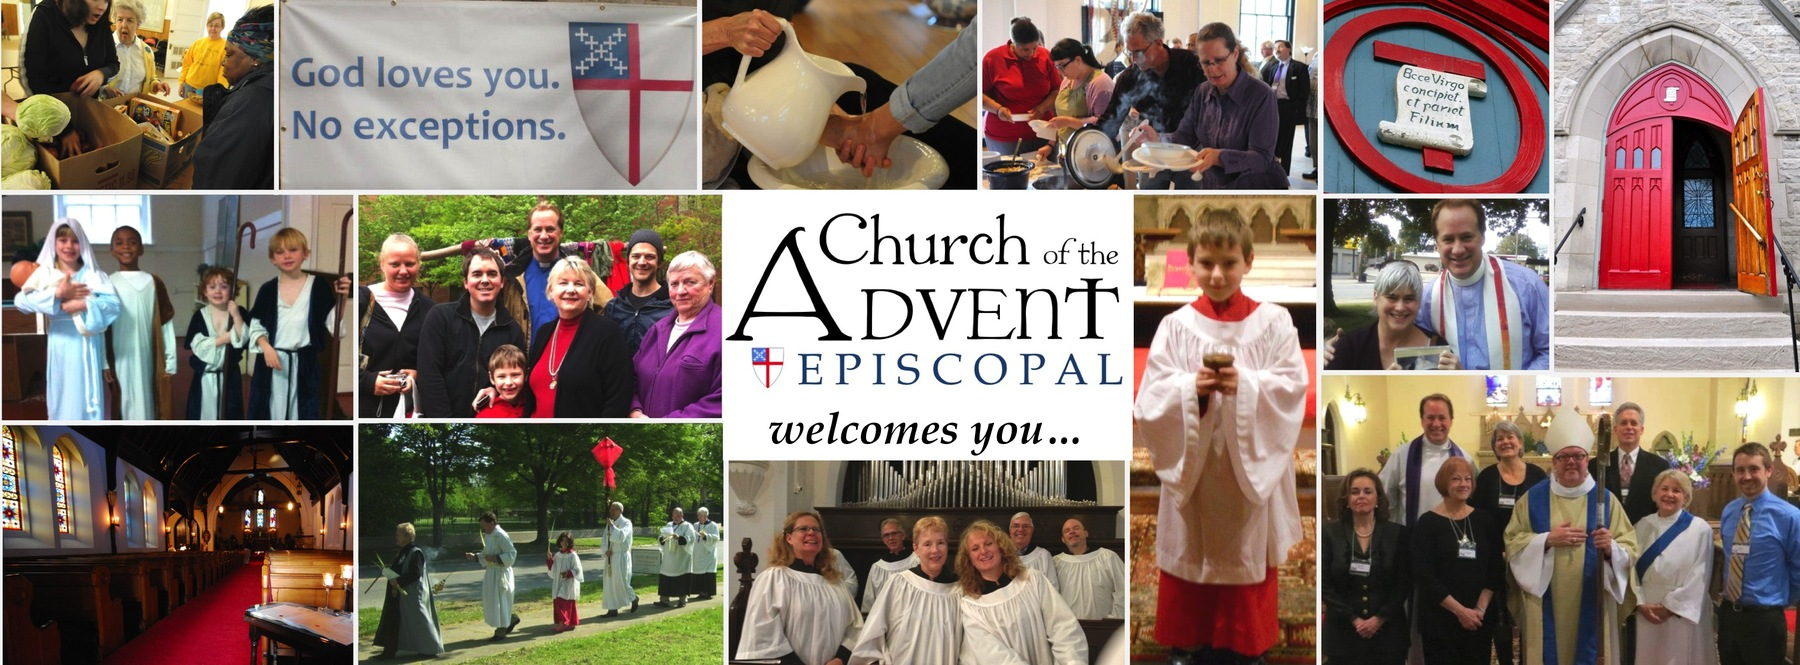 The Church of the Advent Welcomes You!